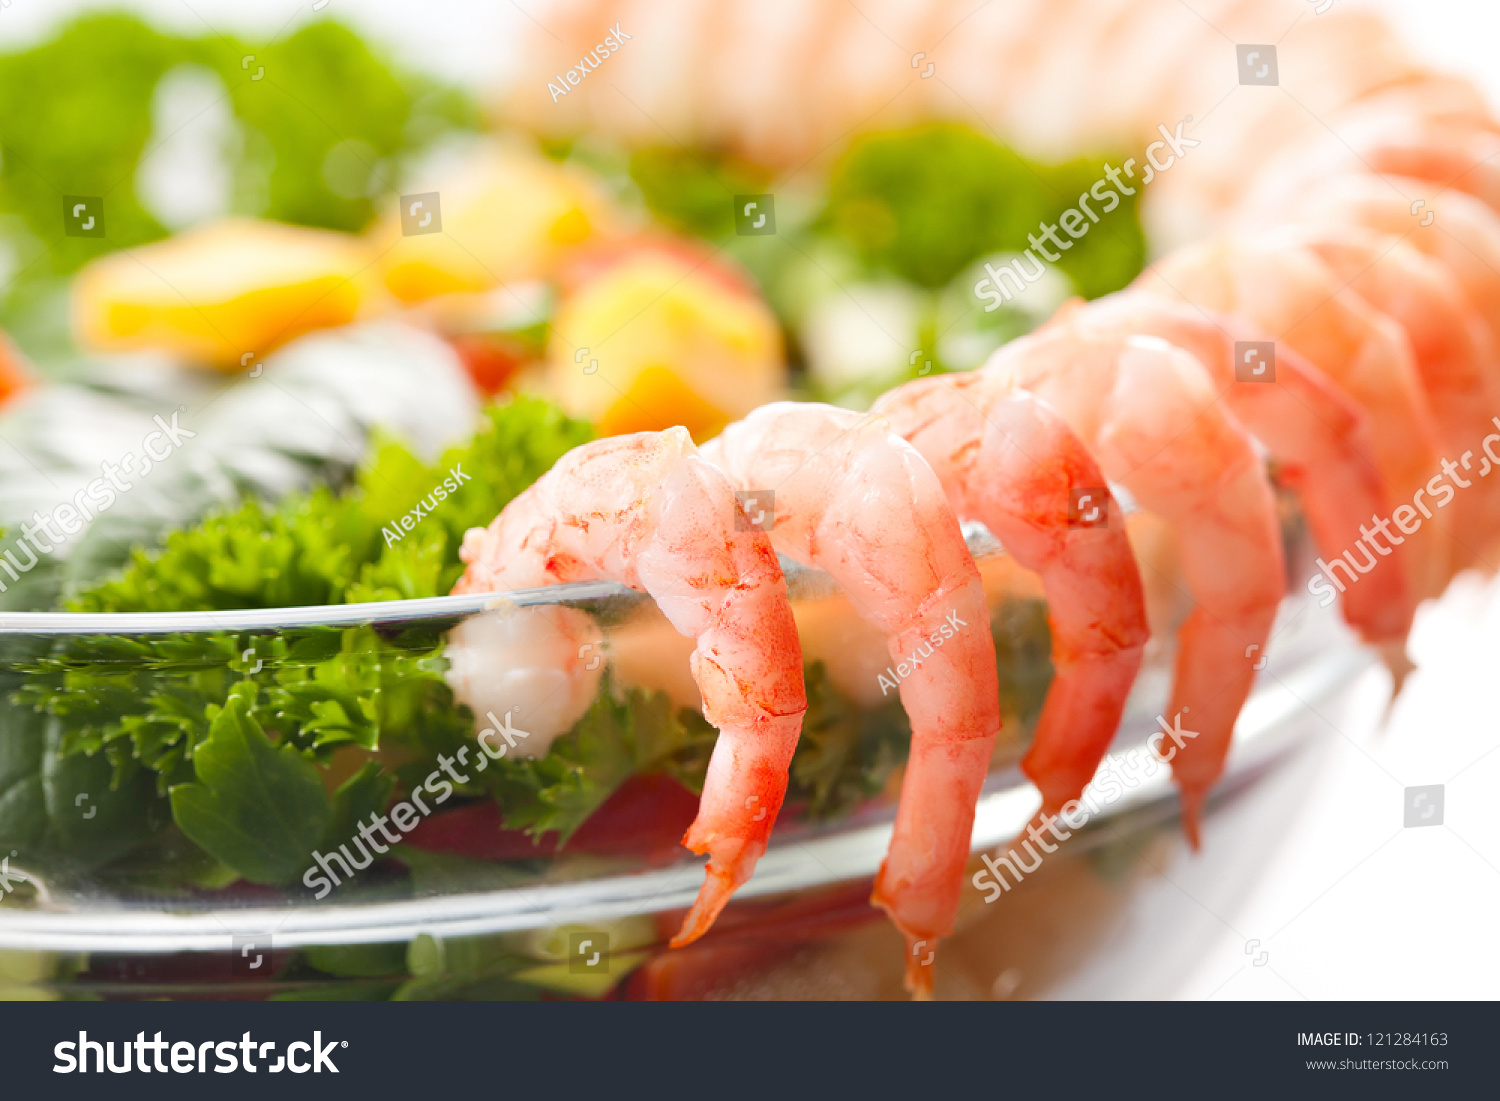 Boiled shrimp salad with cheese and vegetables